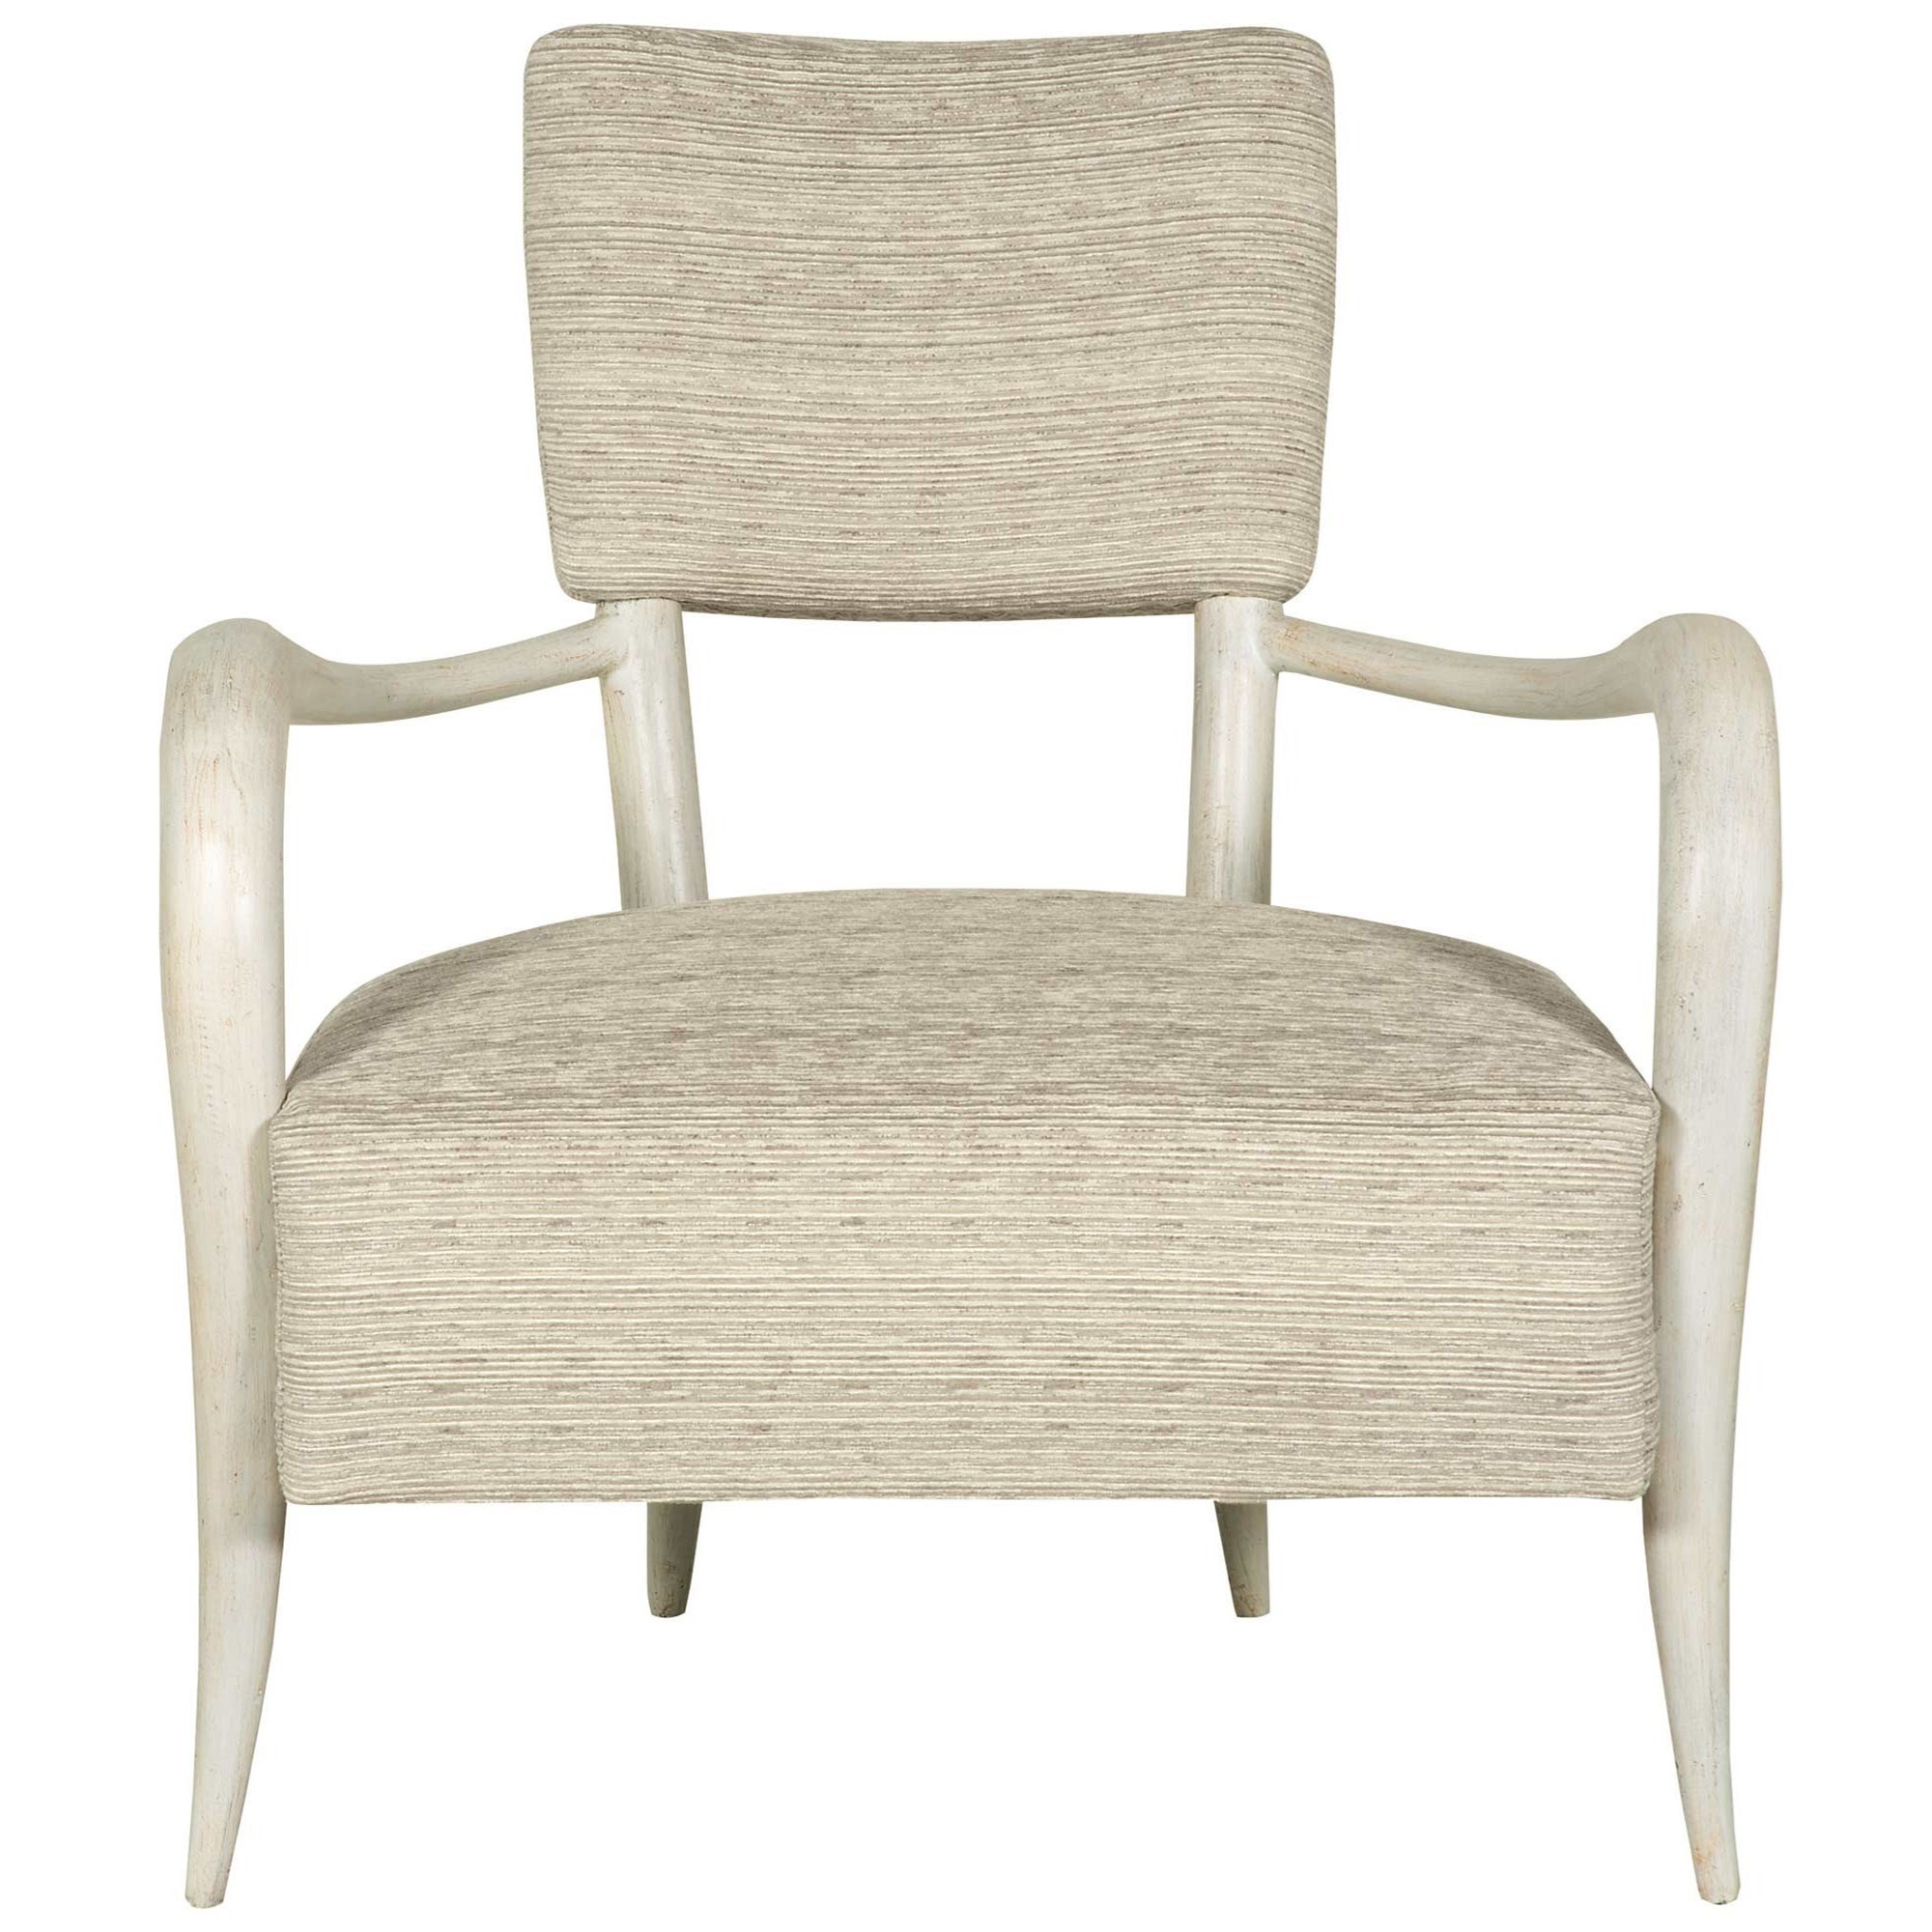 Bernhardt Interiors   Chairs Elka Chair With Modern Rustic Style